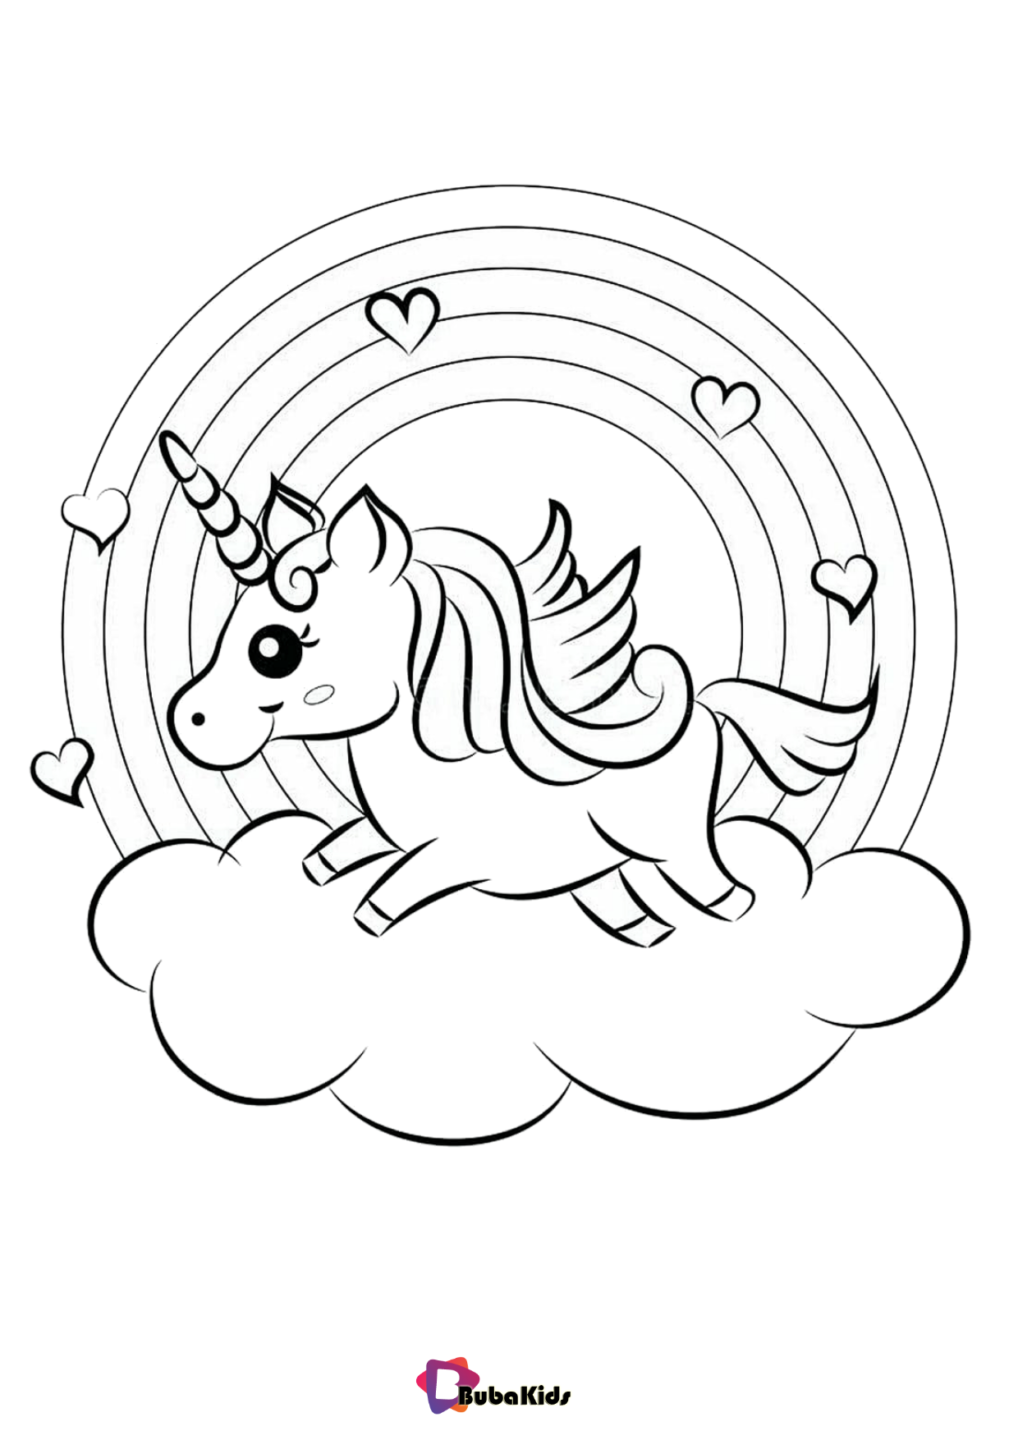 Rainbow And Unicorn With Cloud Coloring Pages Bubakids Com Unicorn Coloring Pages Free Coloring Sheets Coloring Pages